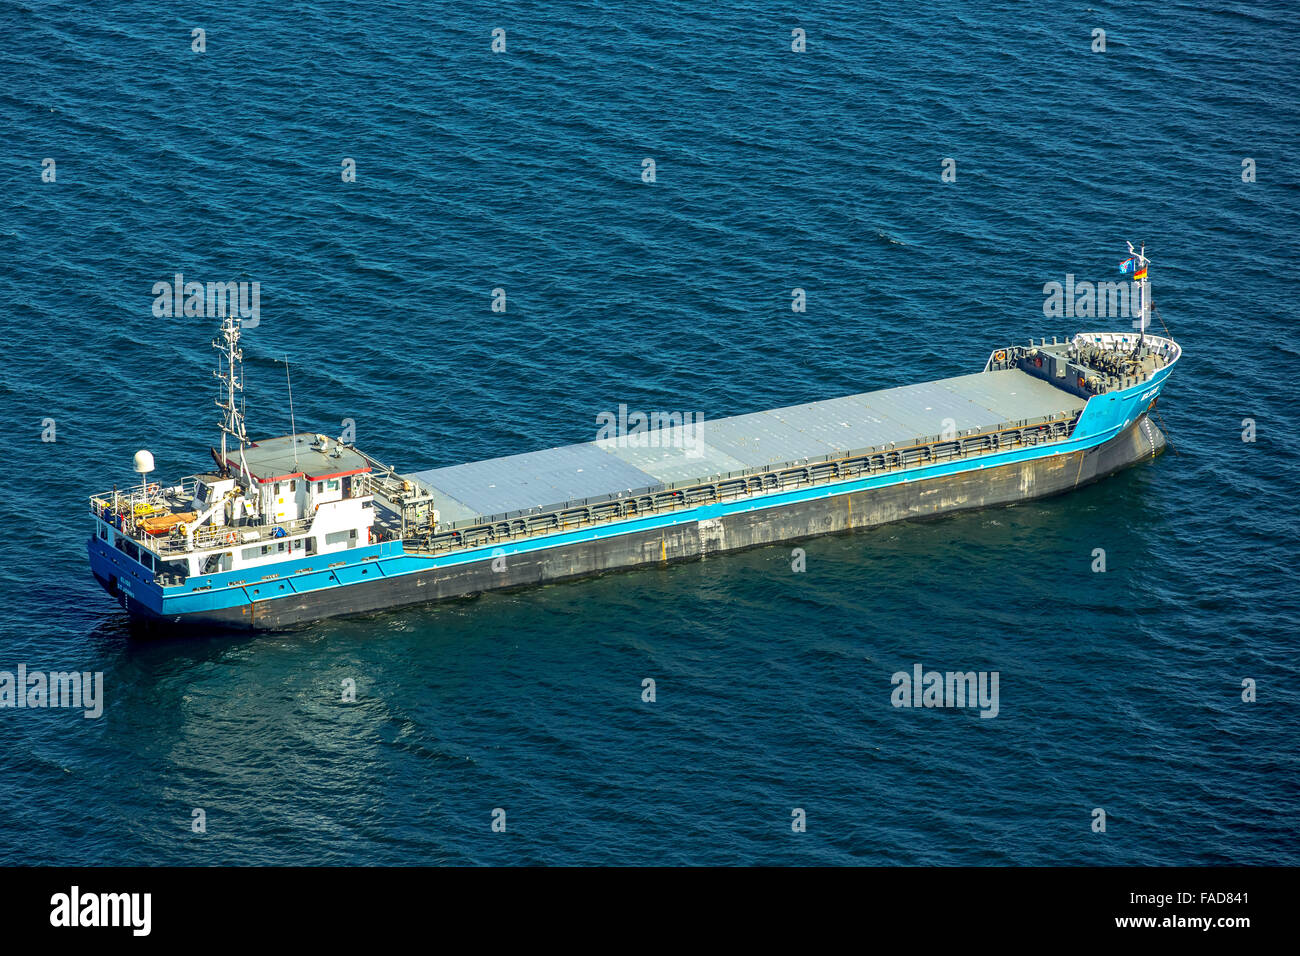 Aerial view, freighter Elise lies at anchor in the Bay of Lübeck, Baltic Sea, Bay of Lübeck, Hanseatic - Stock Image